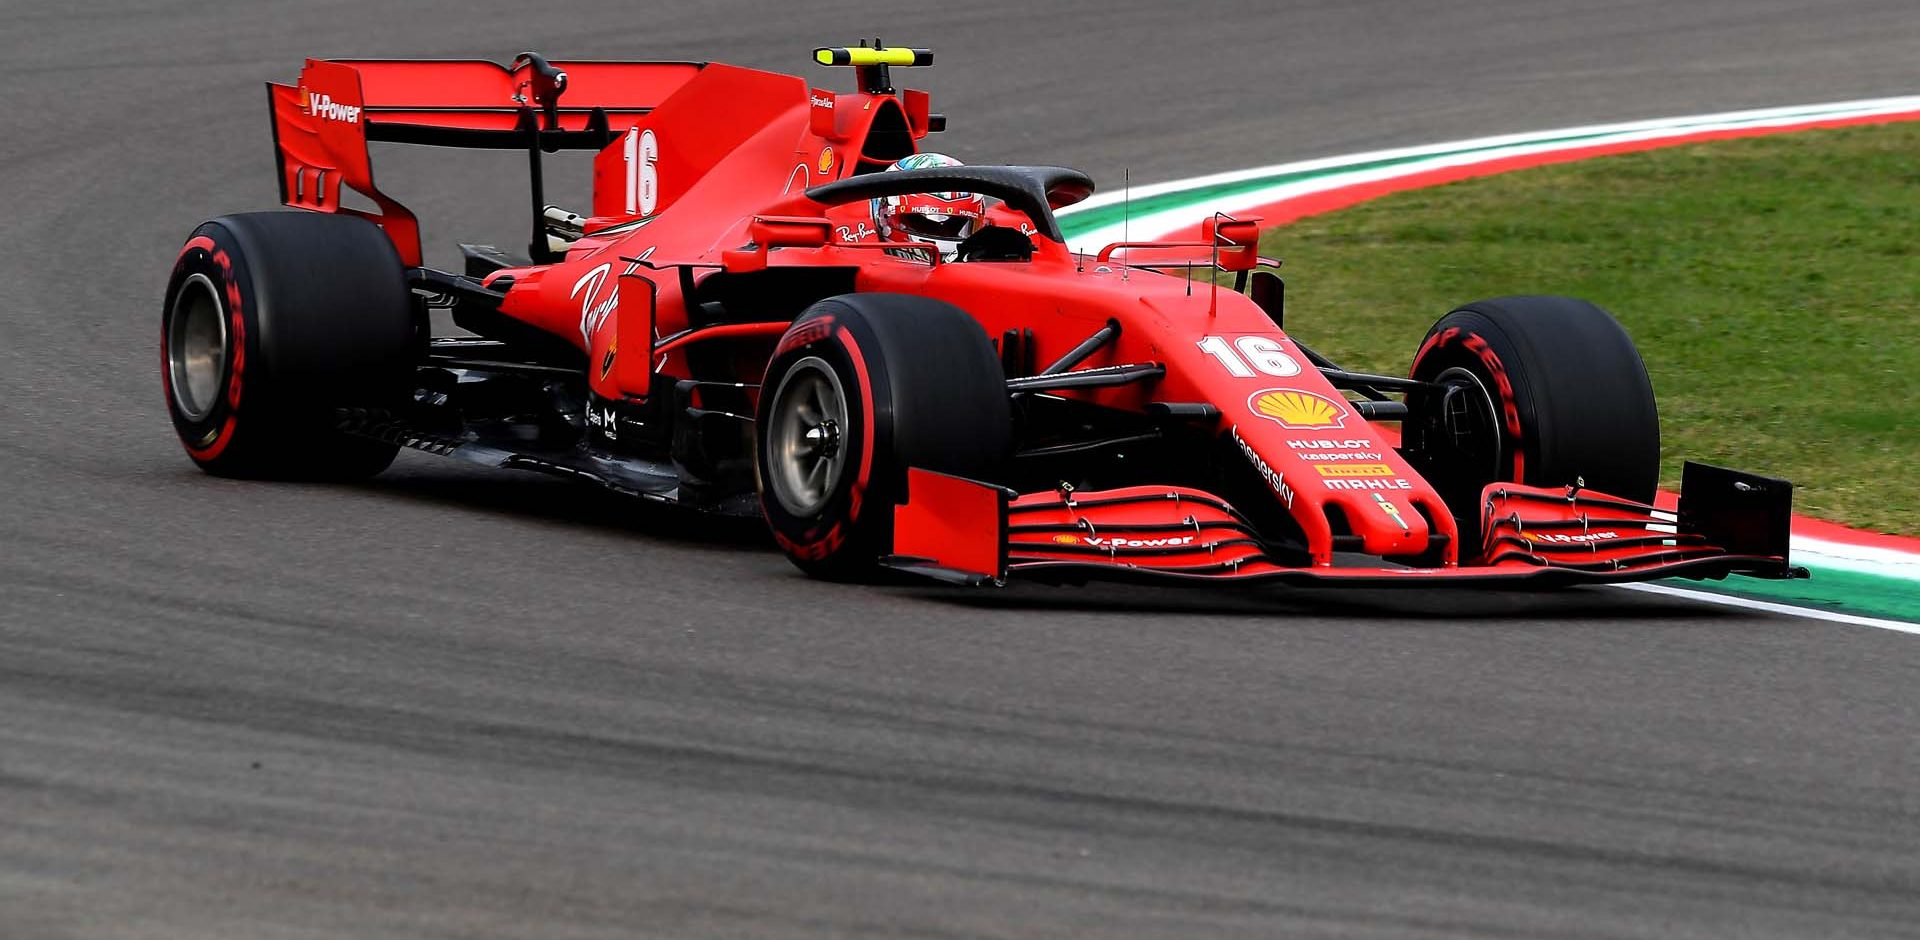 GP EMILIA ROMAGNA F1/2020 -  DOMENICA 01/11/2020   credit: @Scuderia Ferrari Press Office Charles Leclerc